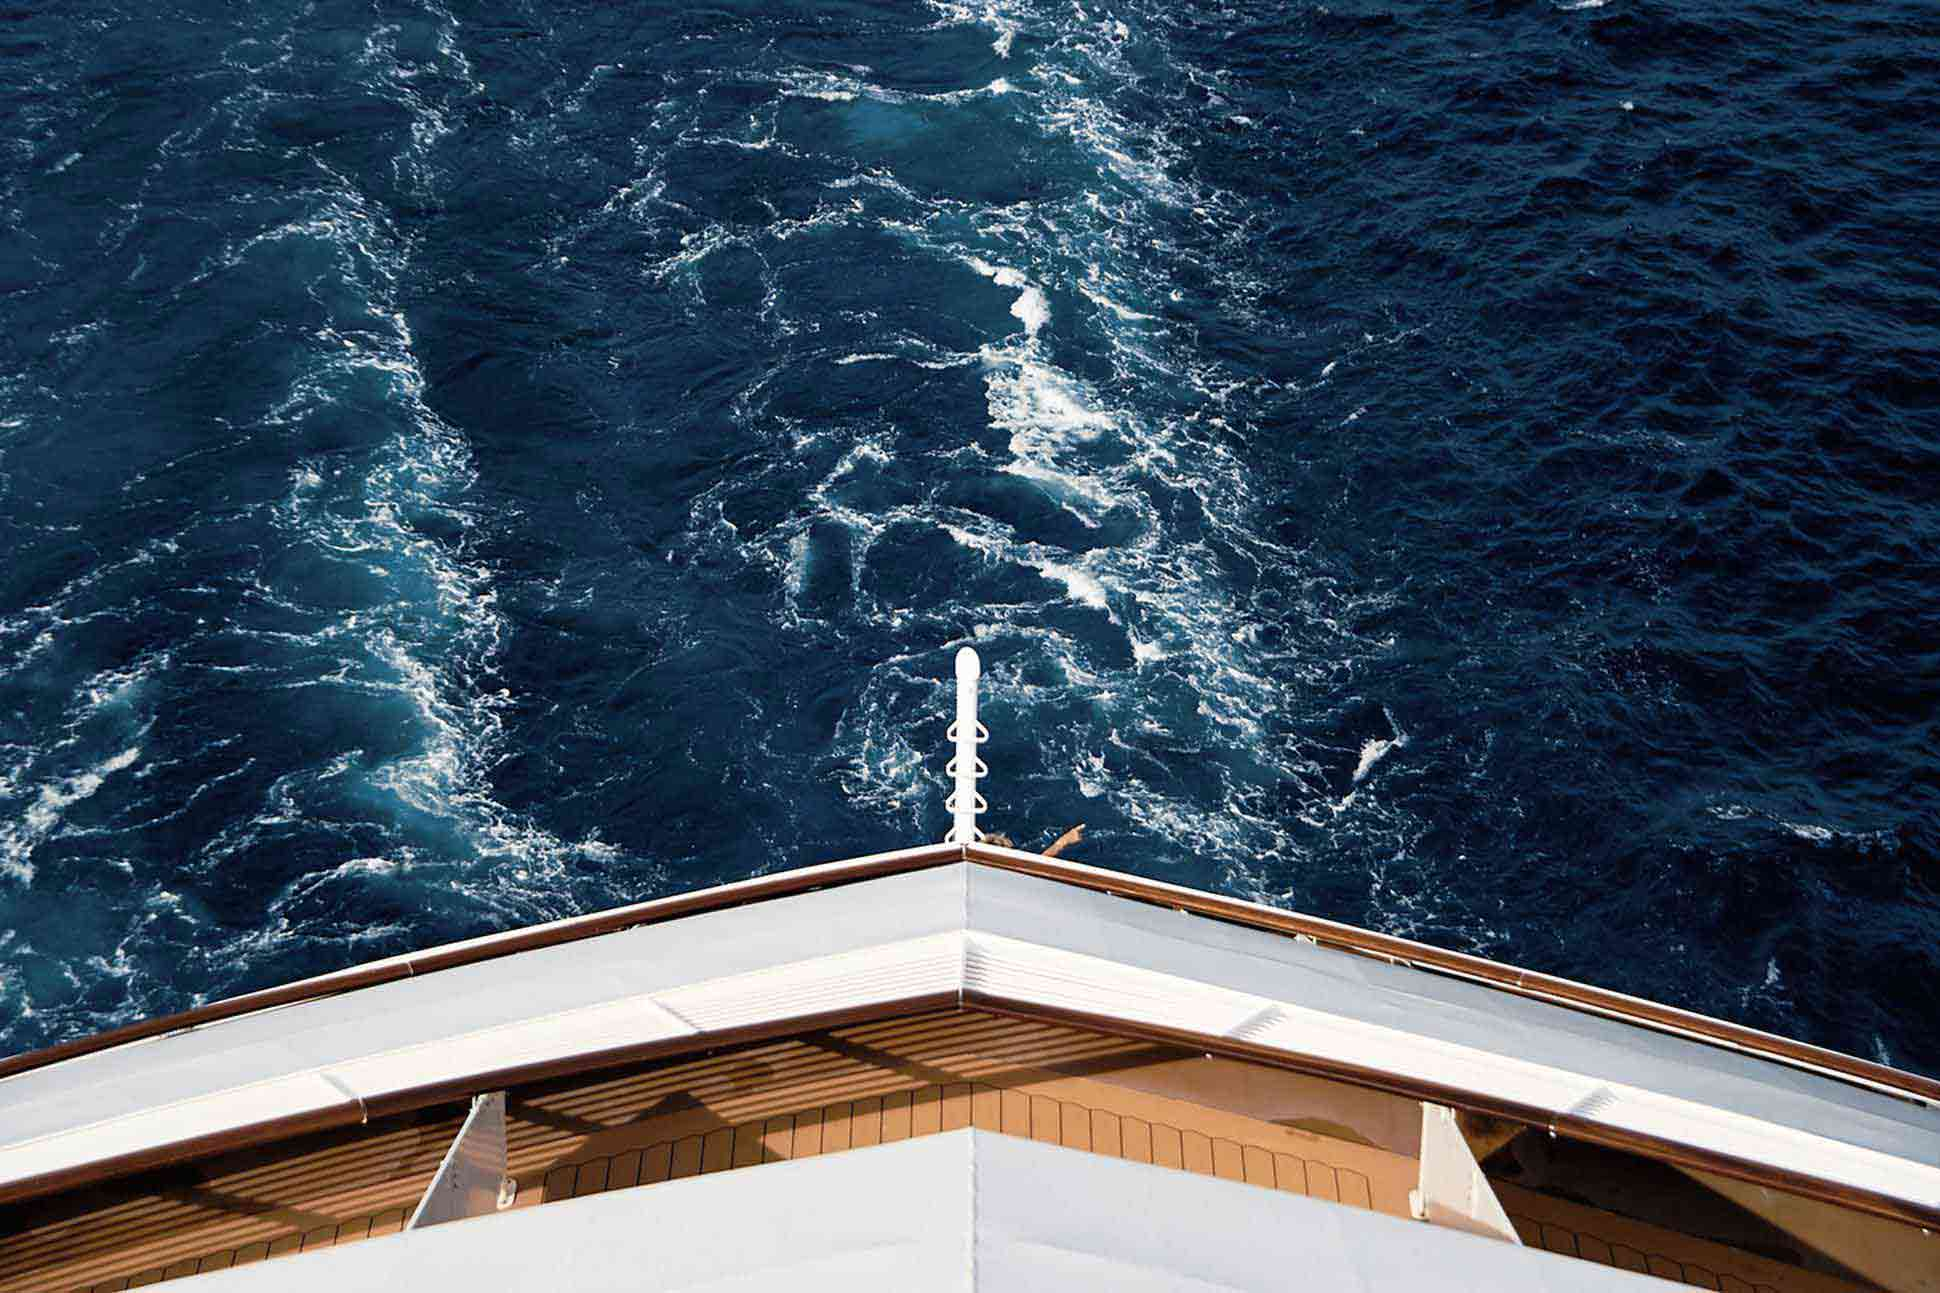 Carry on cruising: <br>The high seas – a huge opportunity for growth